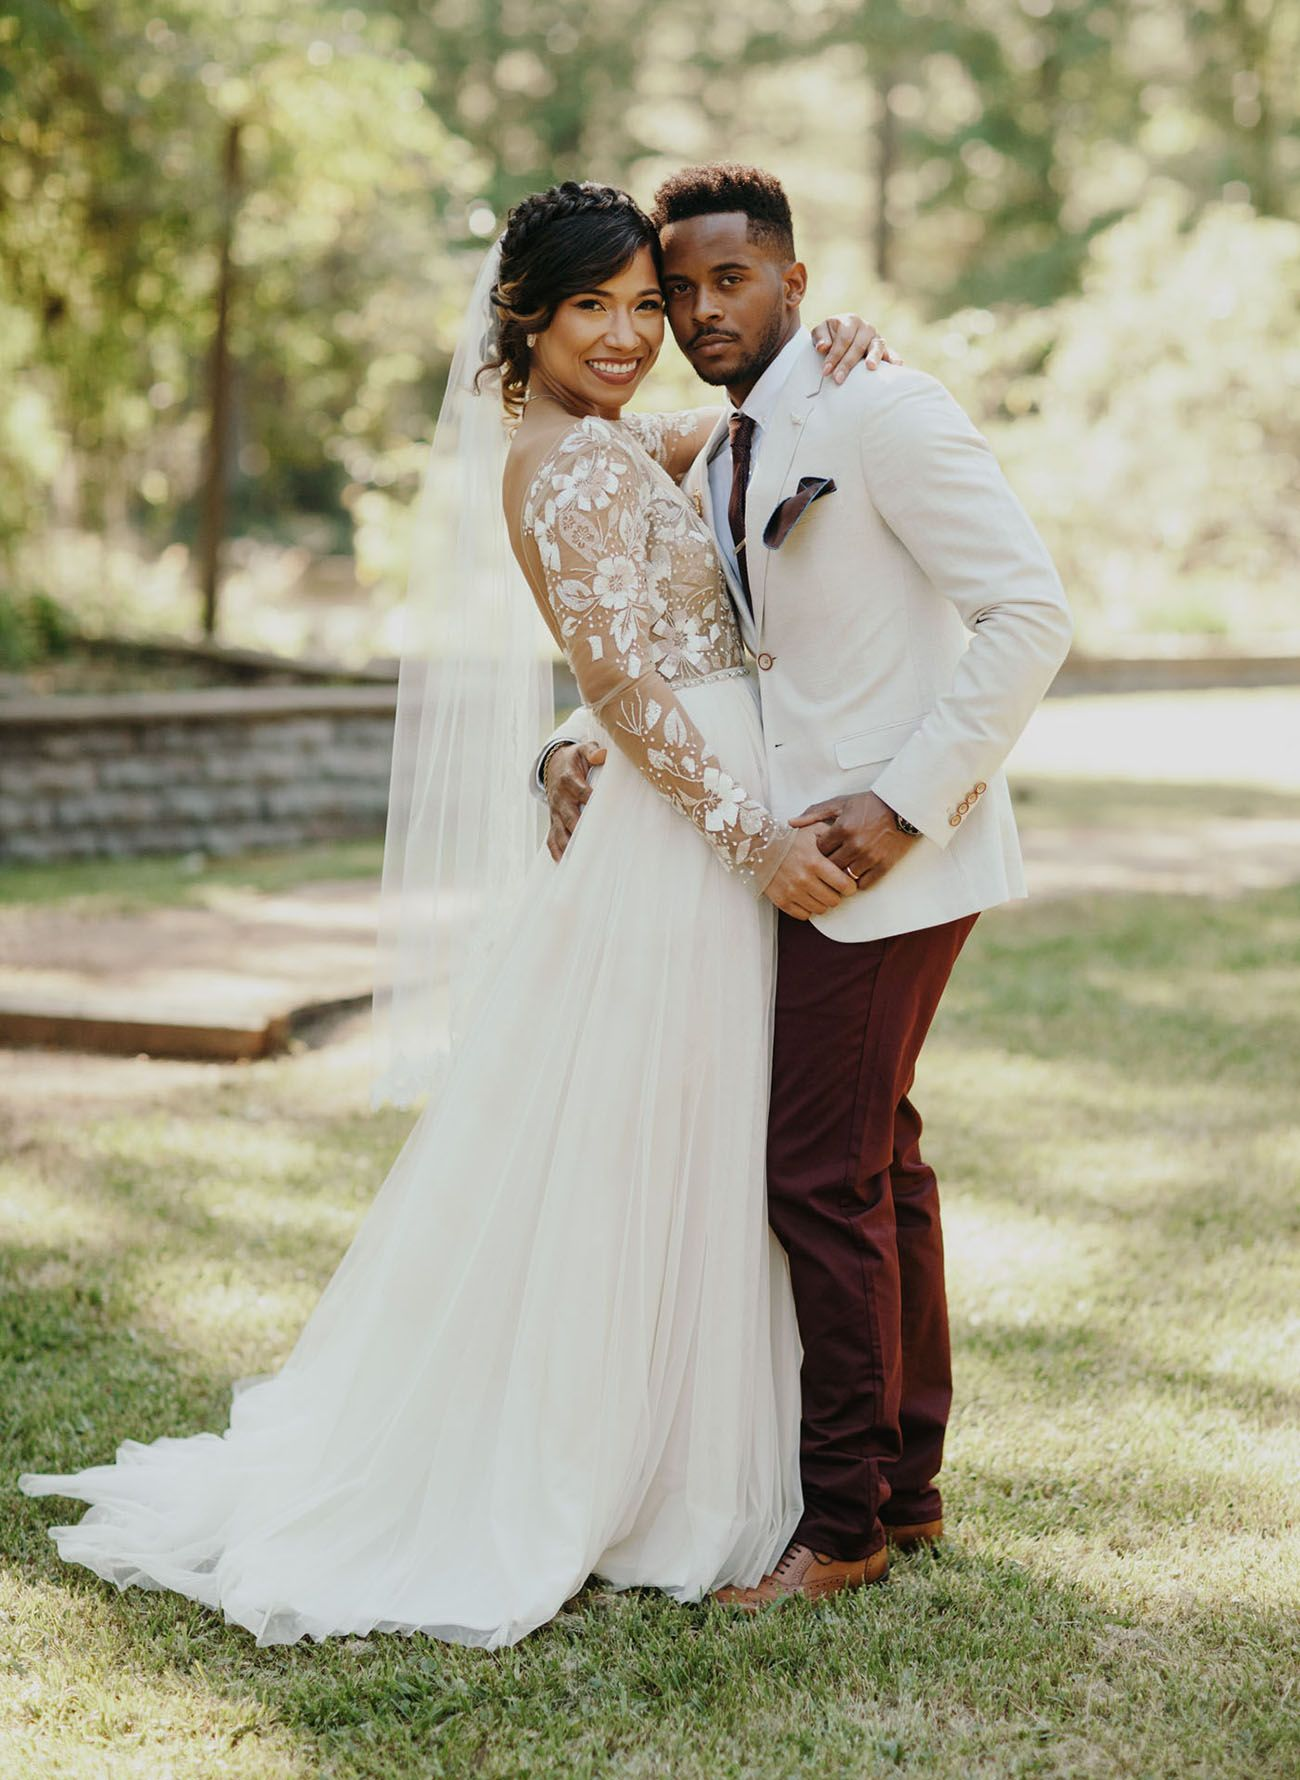 Is This My Wedding Gaaah I Love It Changing Up The Bridal Party S Colors Burgundy Gold Ivory Cream